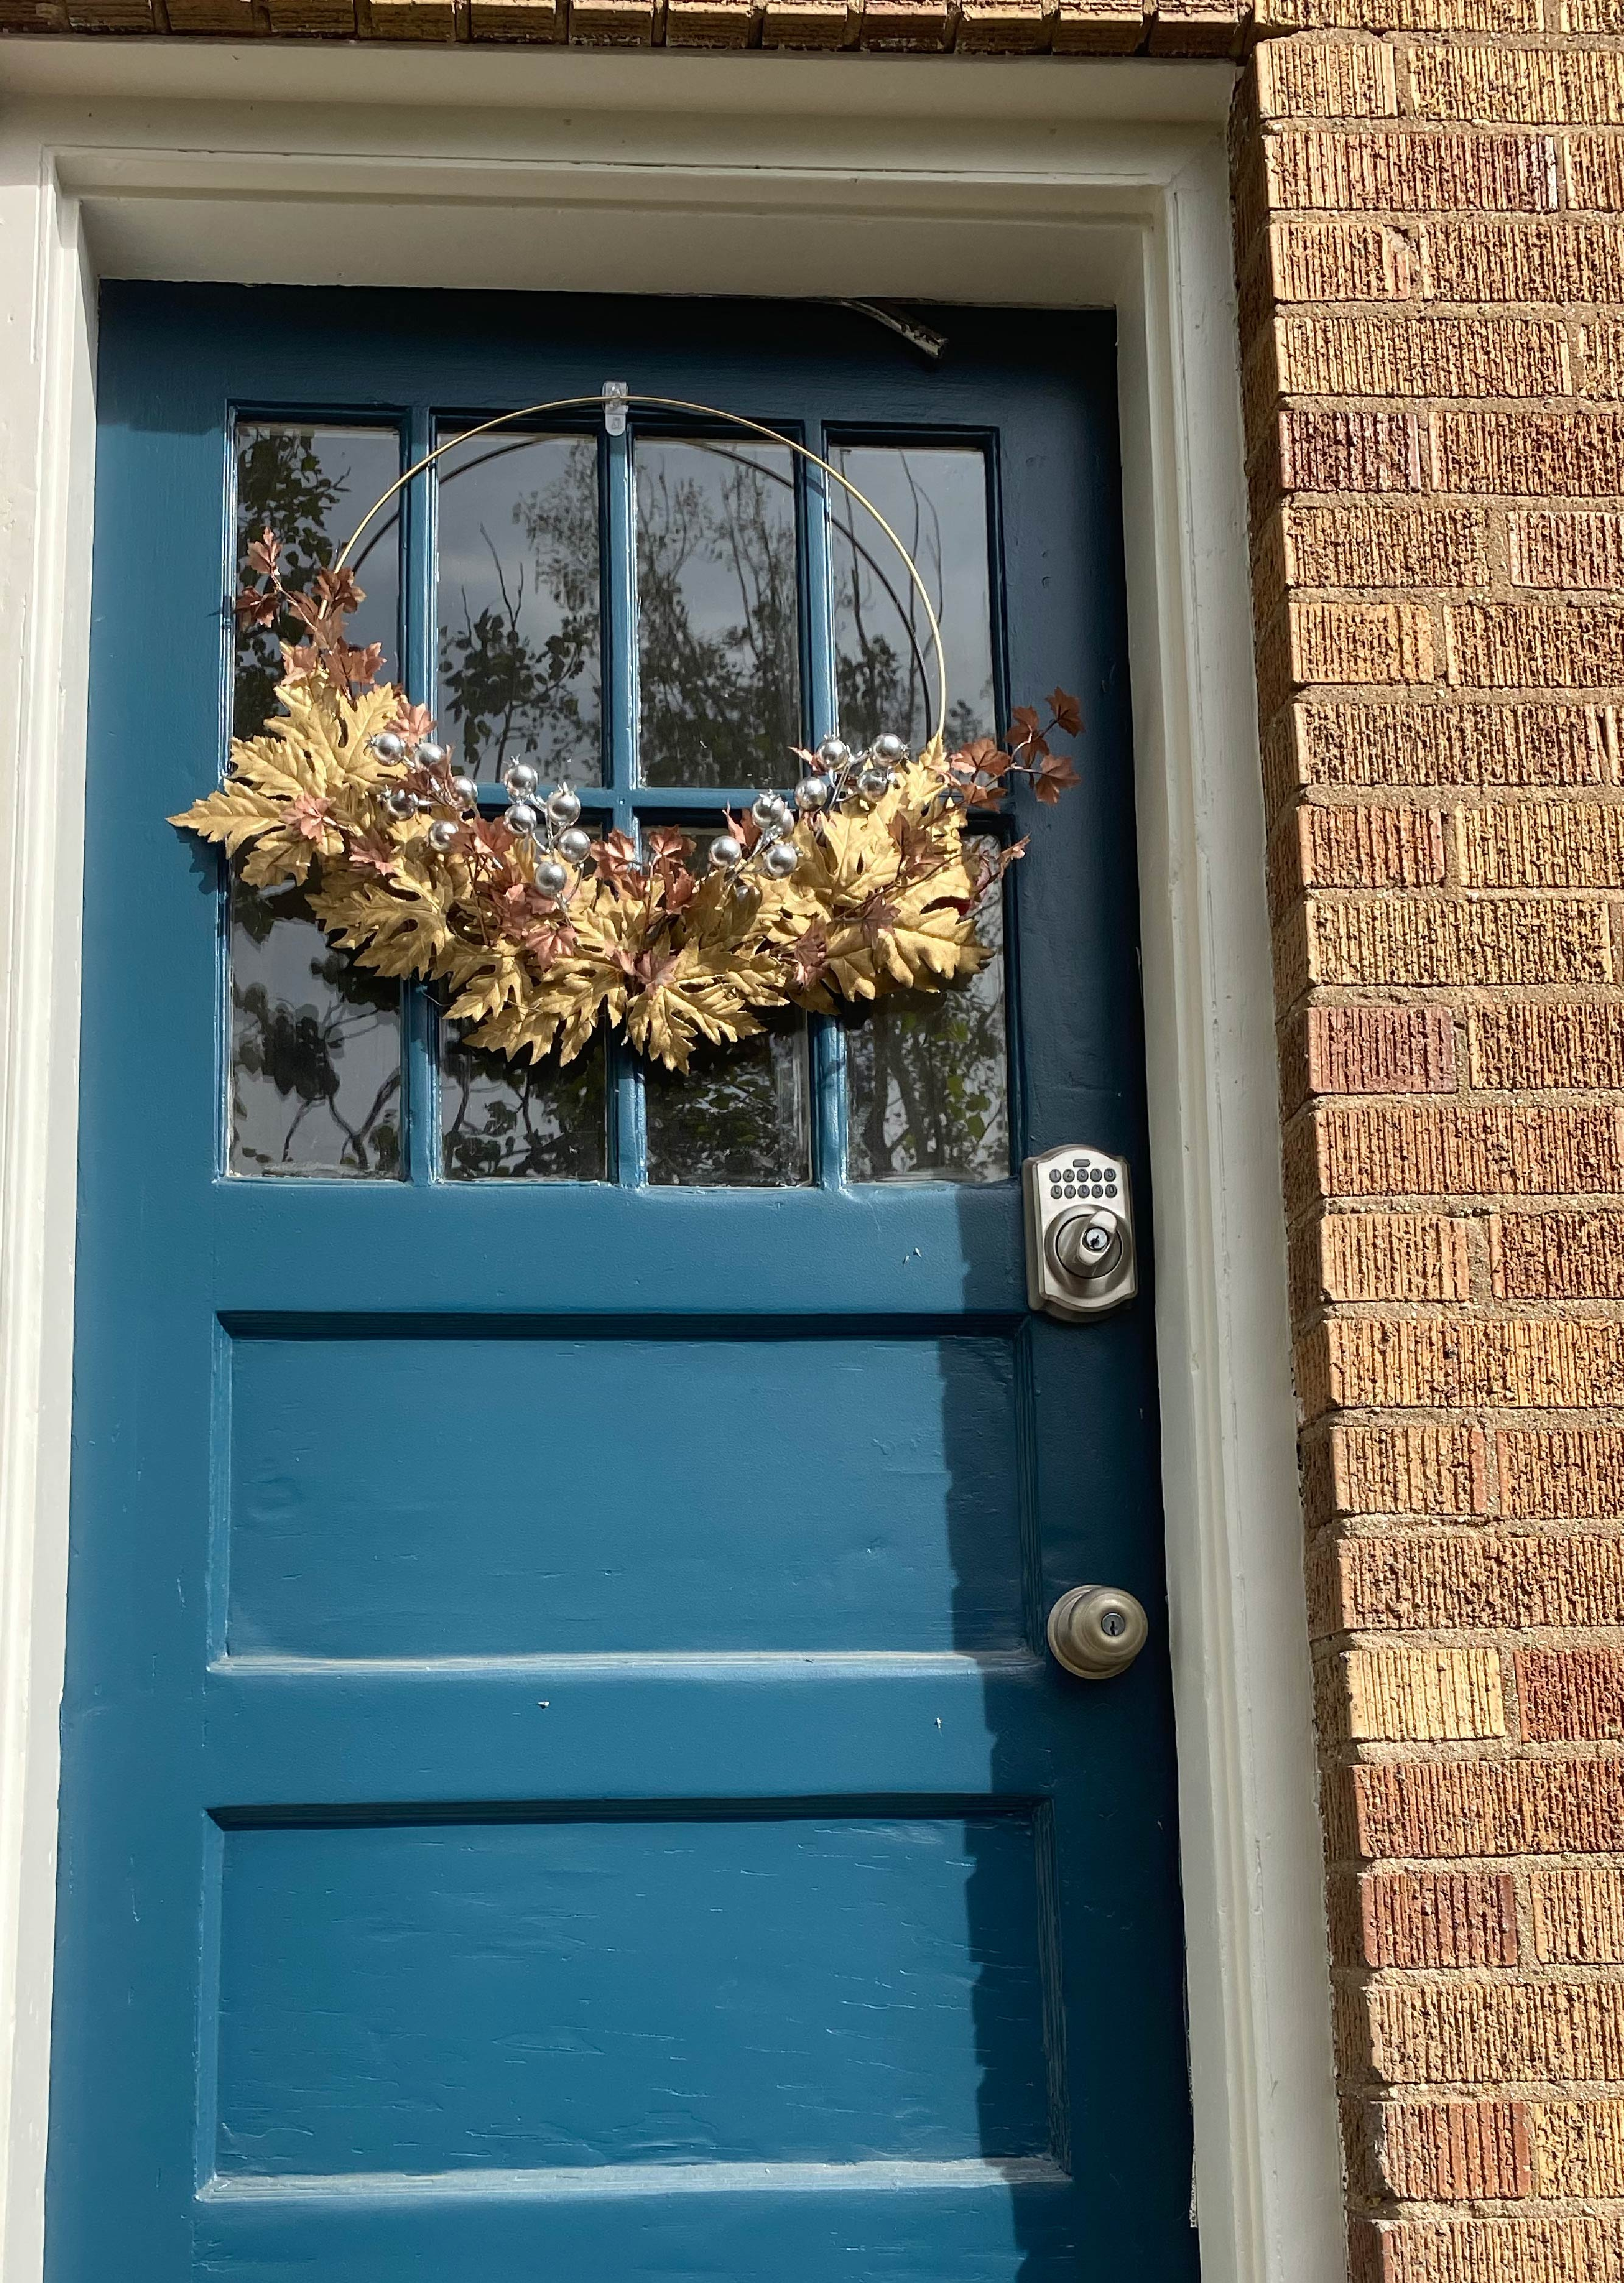 Picture of finished wreath on blue door.